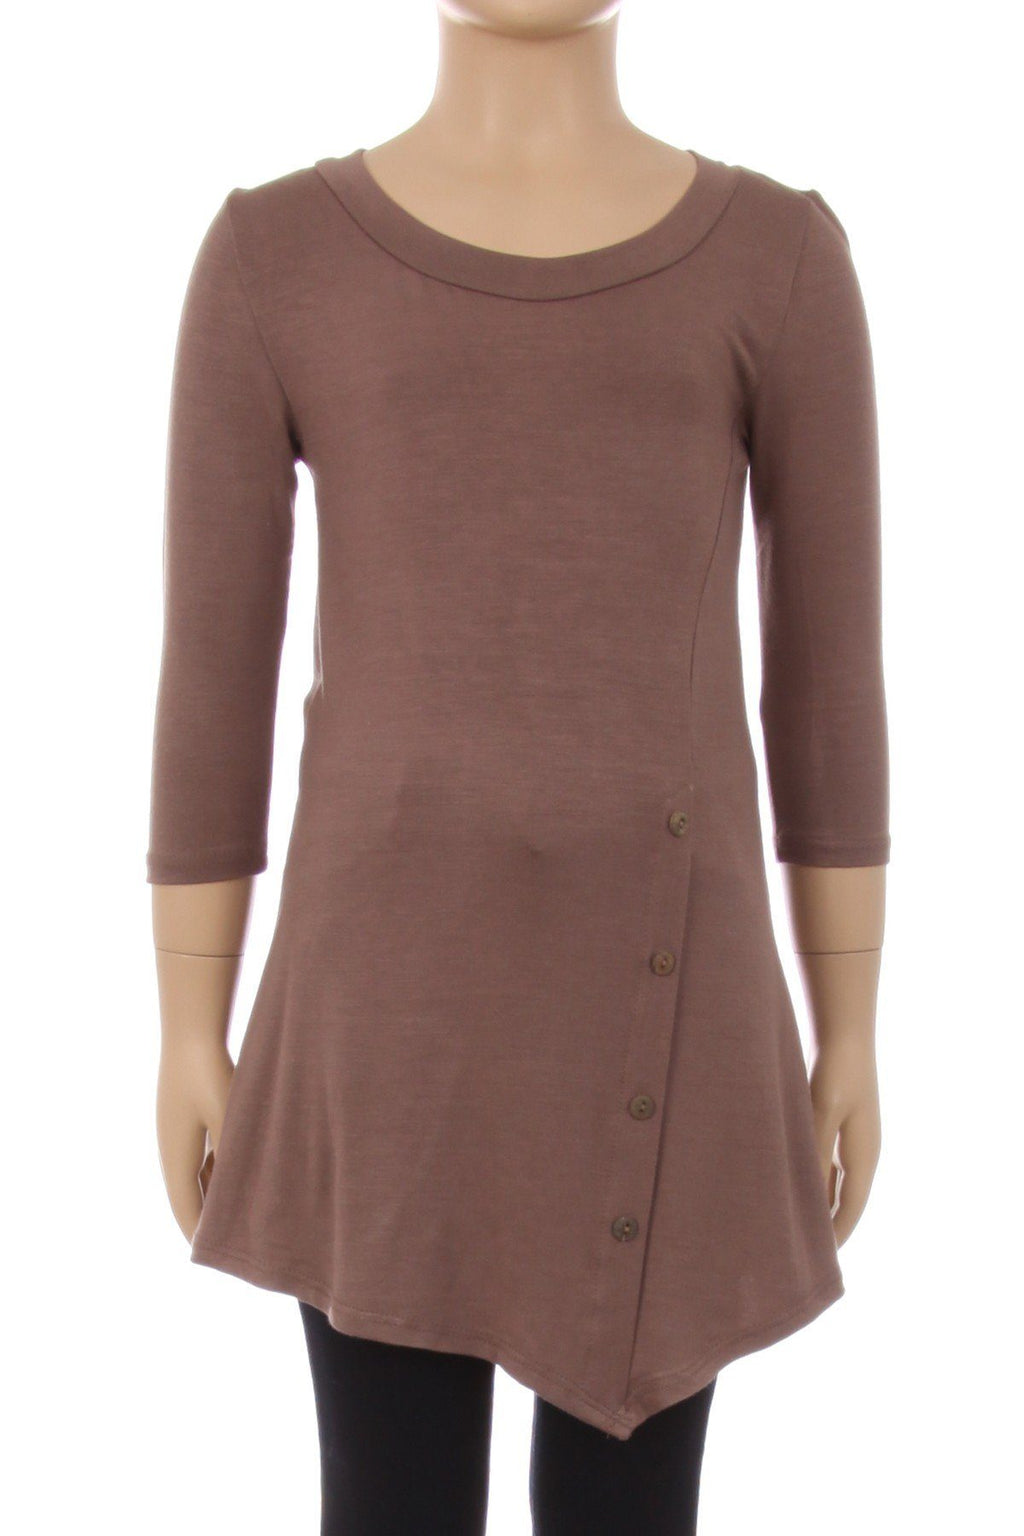 Girl's Mocha Brown Tunic Dress Asymmetric Top: S/M/L/XL - MomMe and More